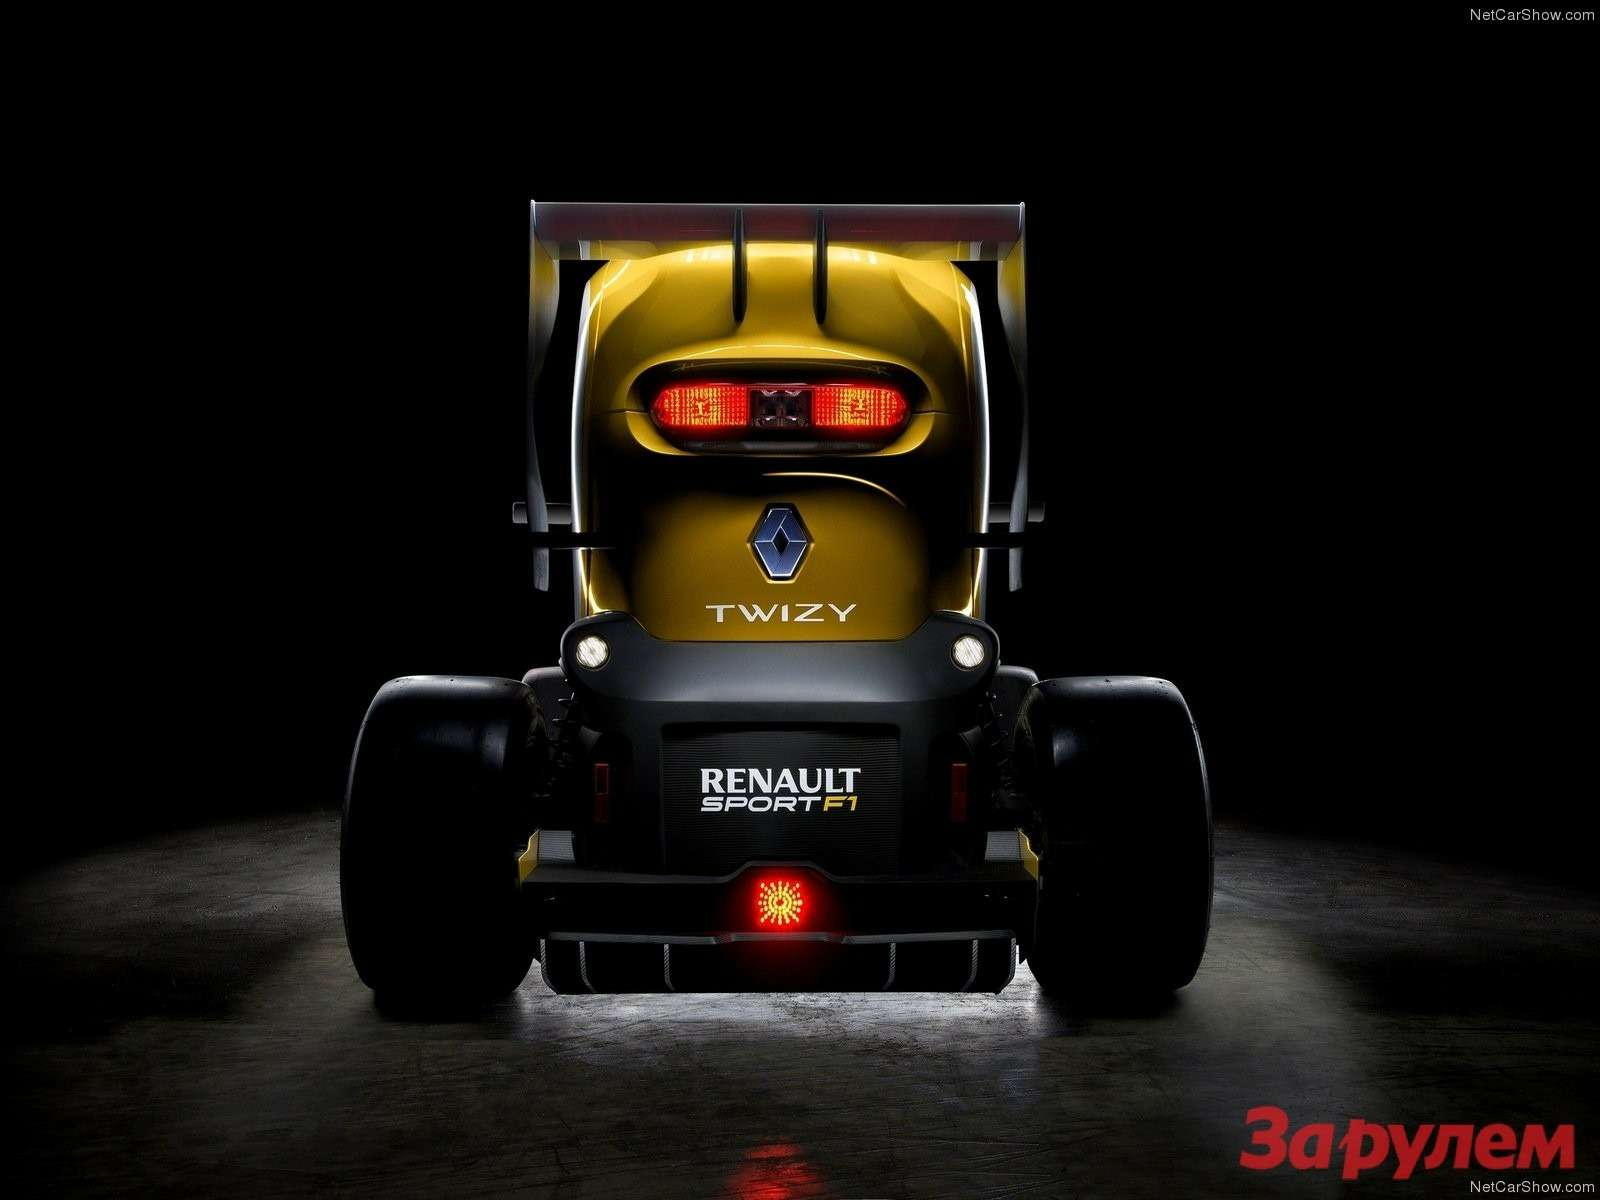 Renault Twizy RSF1Concept 2013 1600x1200 wallpaper 05